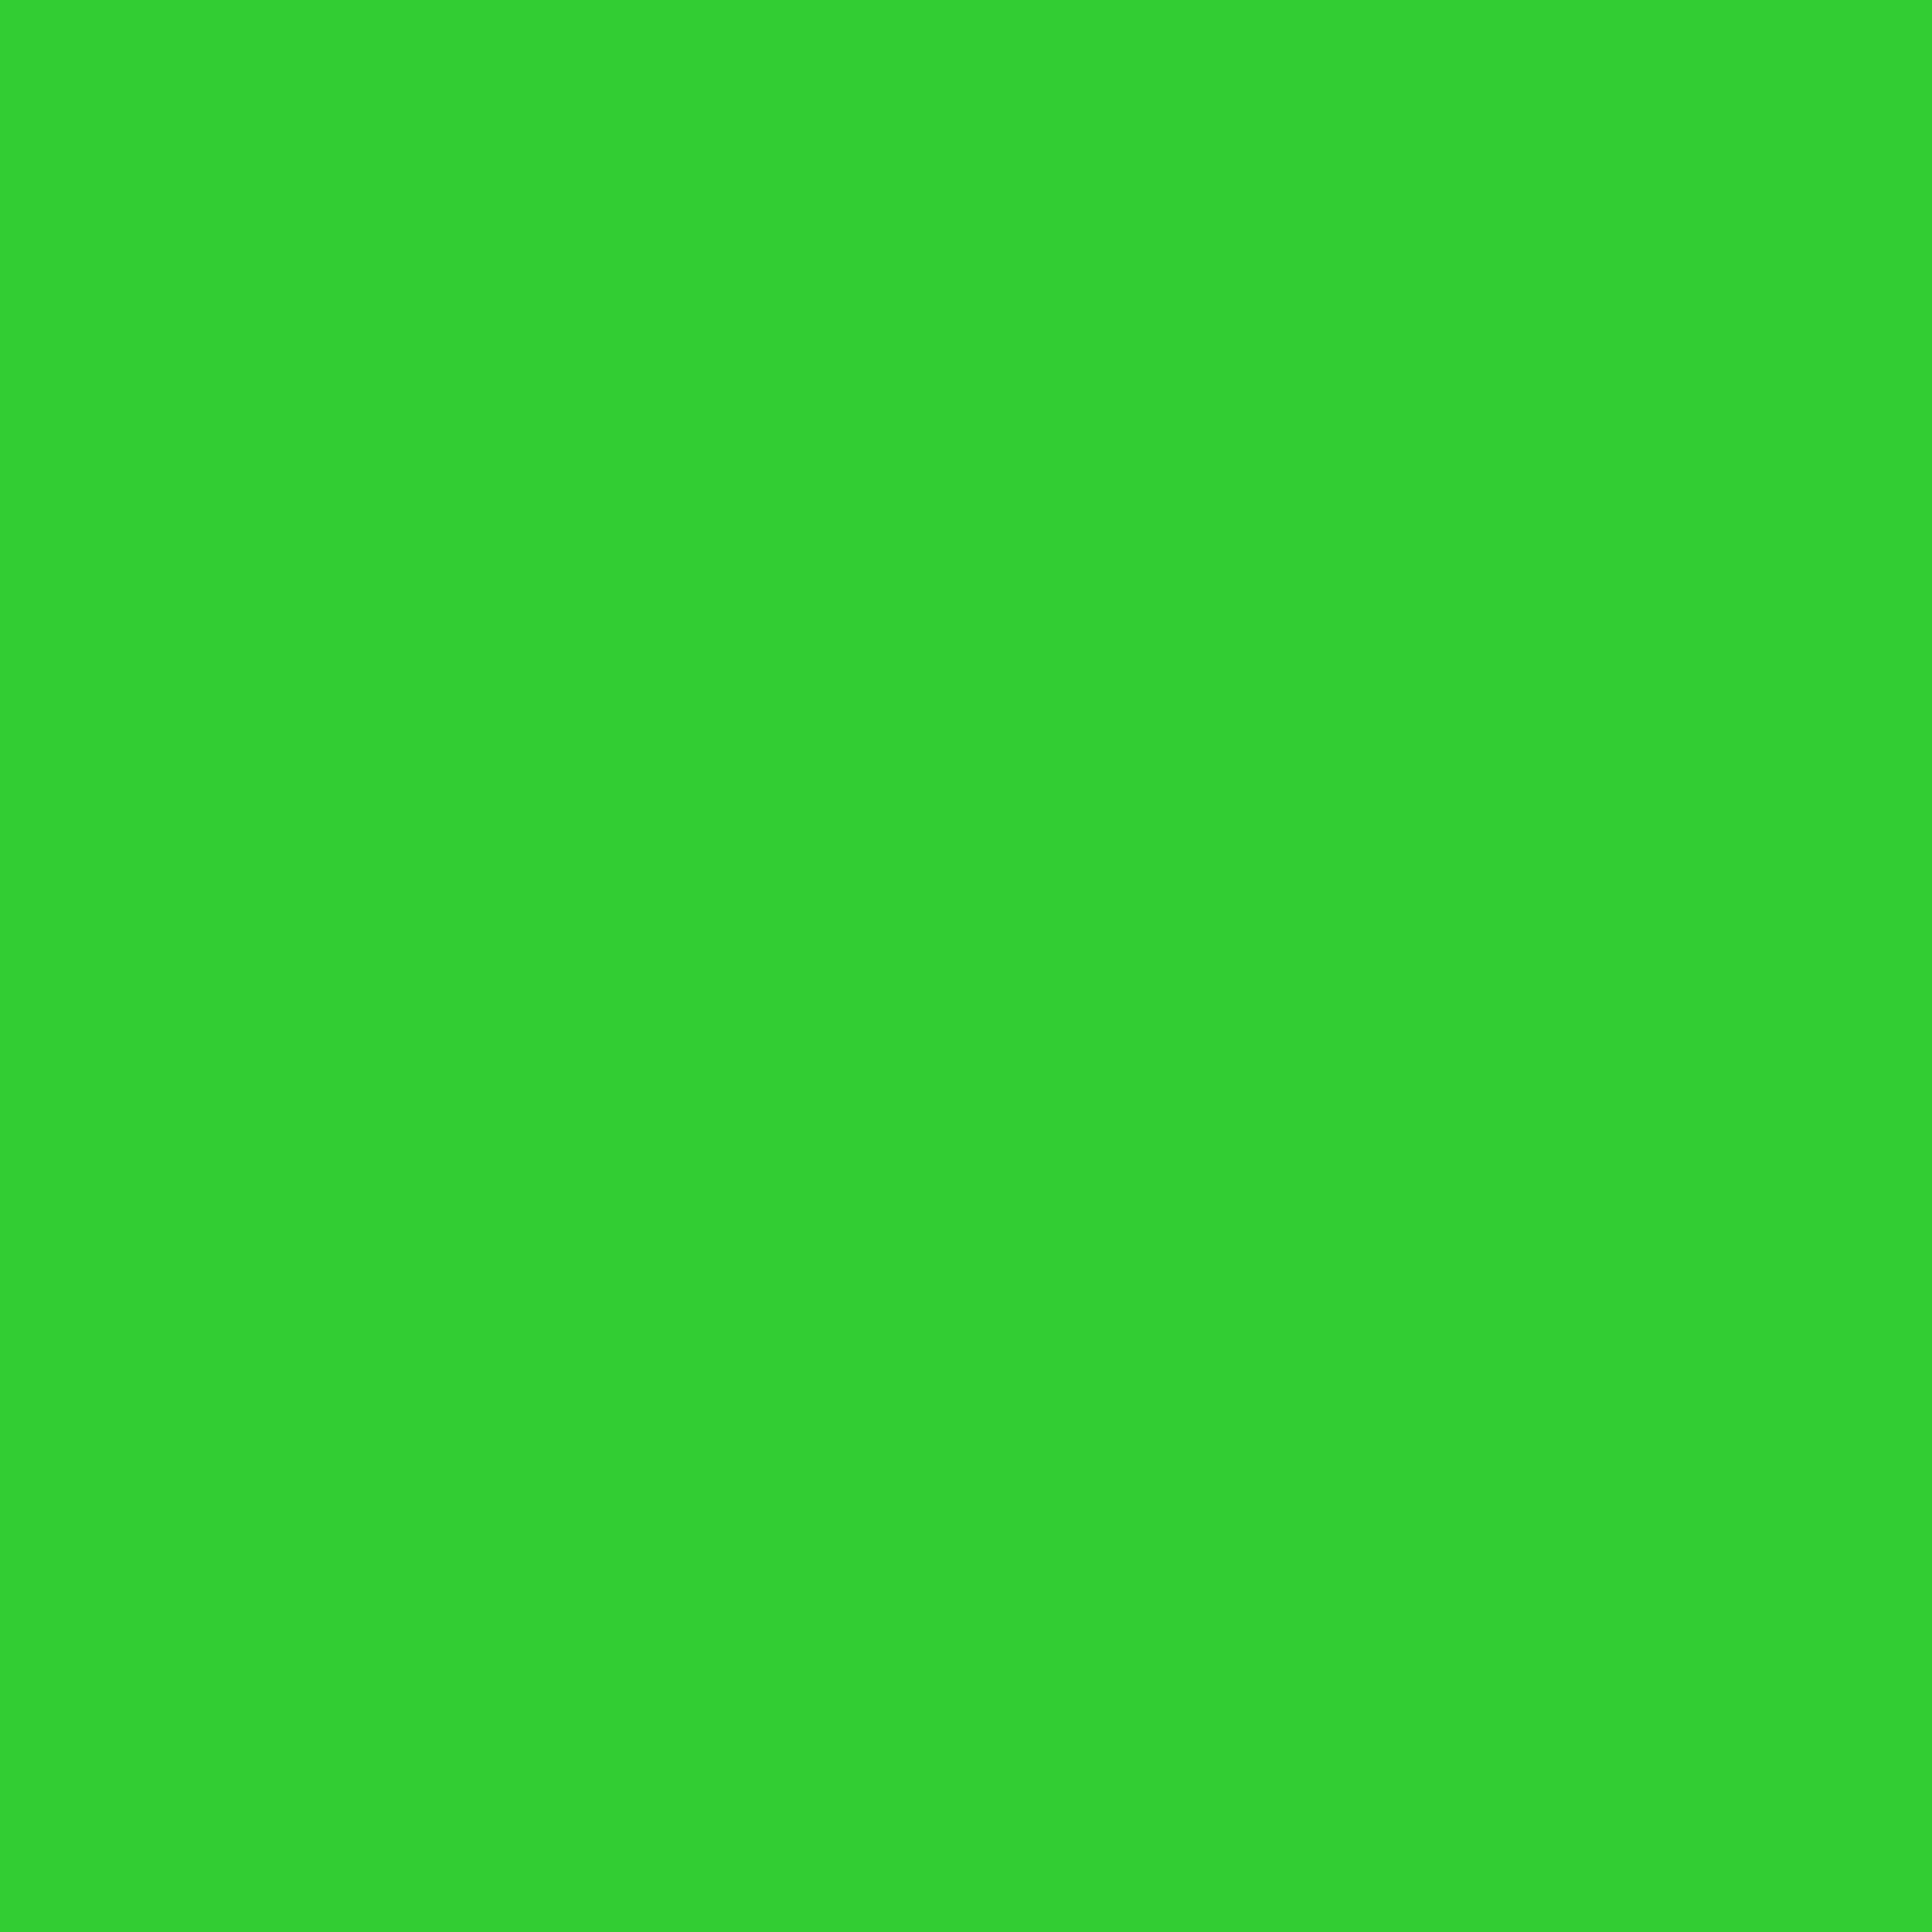 3600x3600 Lime Green Solid Color Background